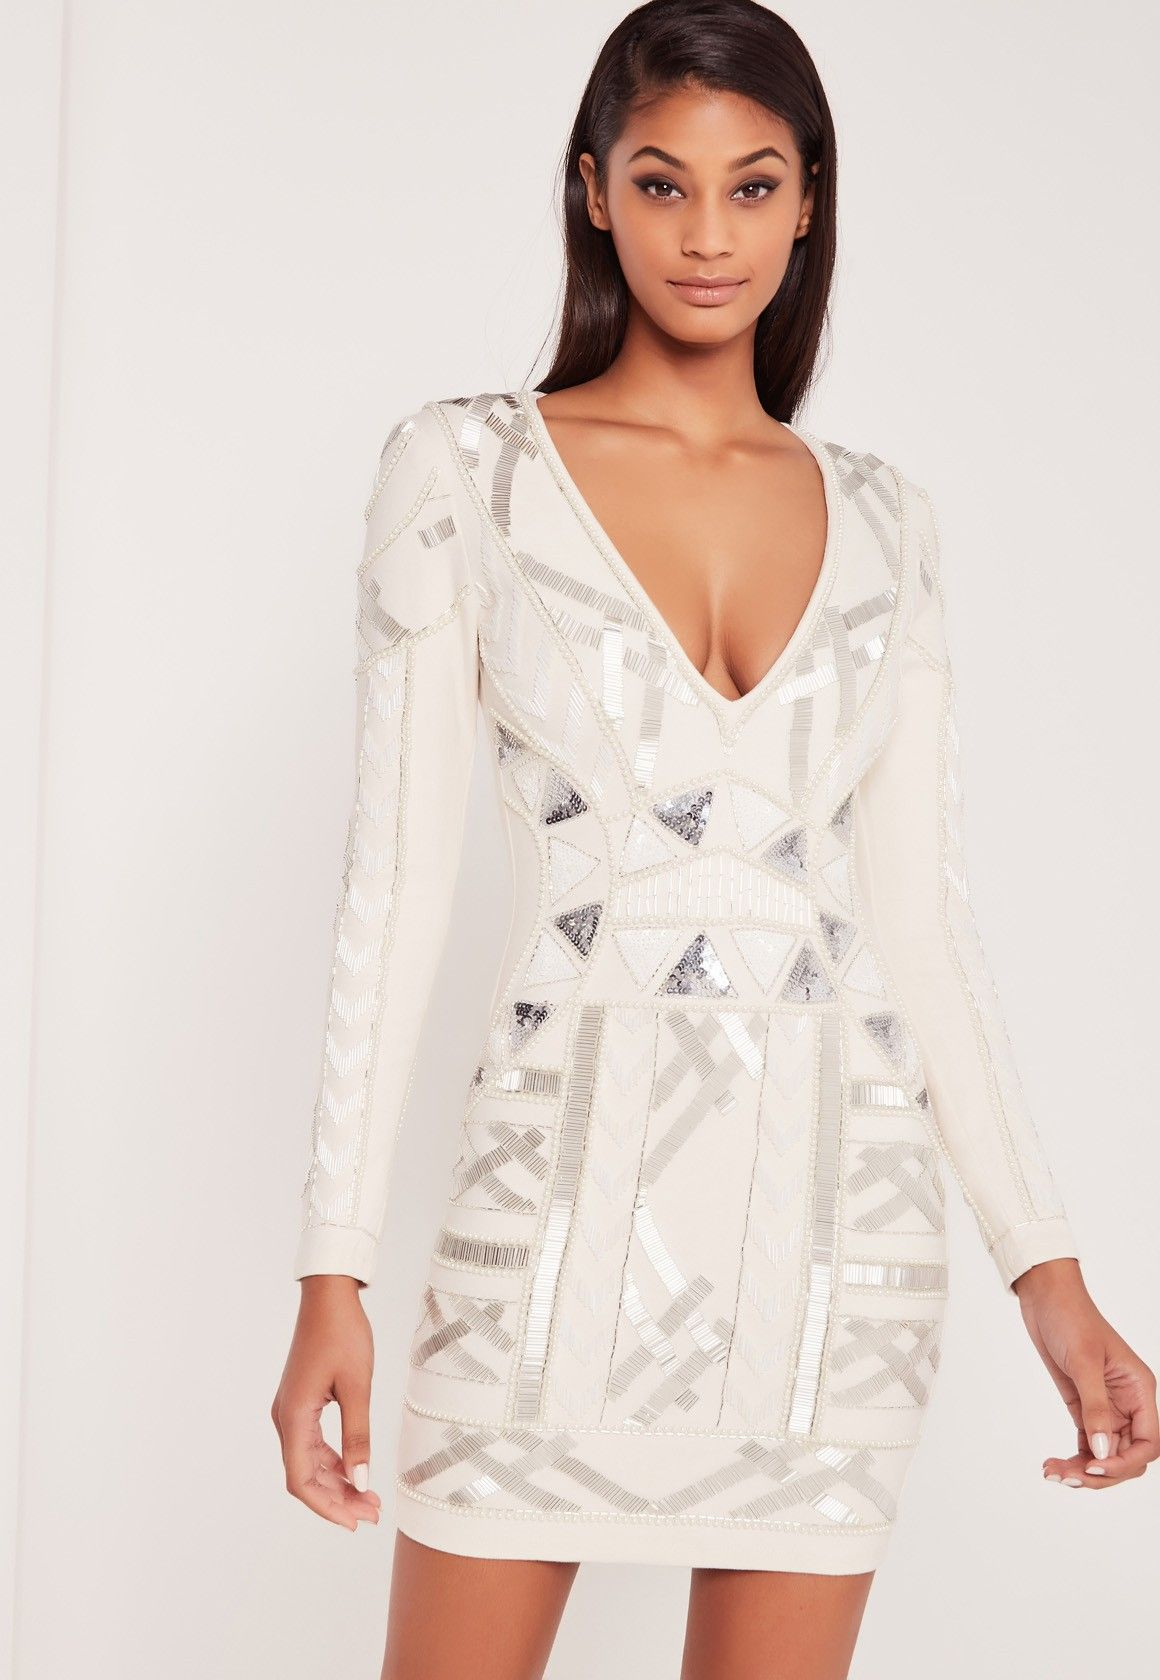 d8639d4d73a8 Missguided - Carli Bybel Embellished Plunge Bodycon Dress White ...